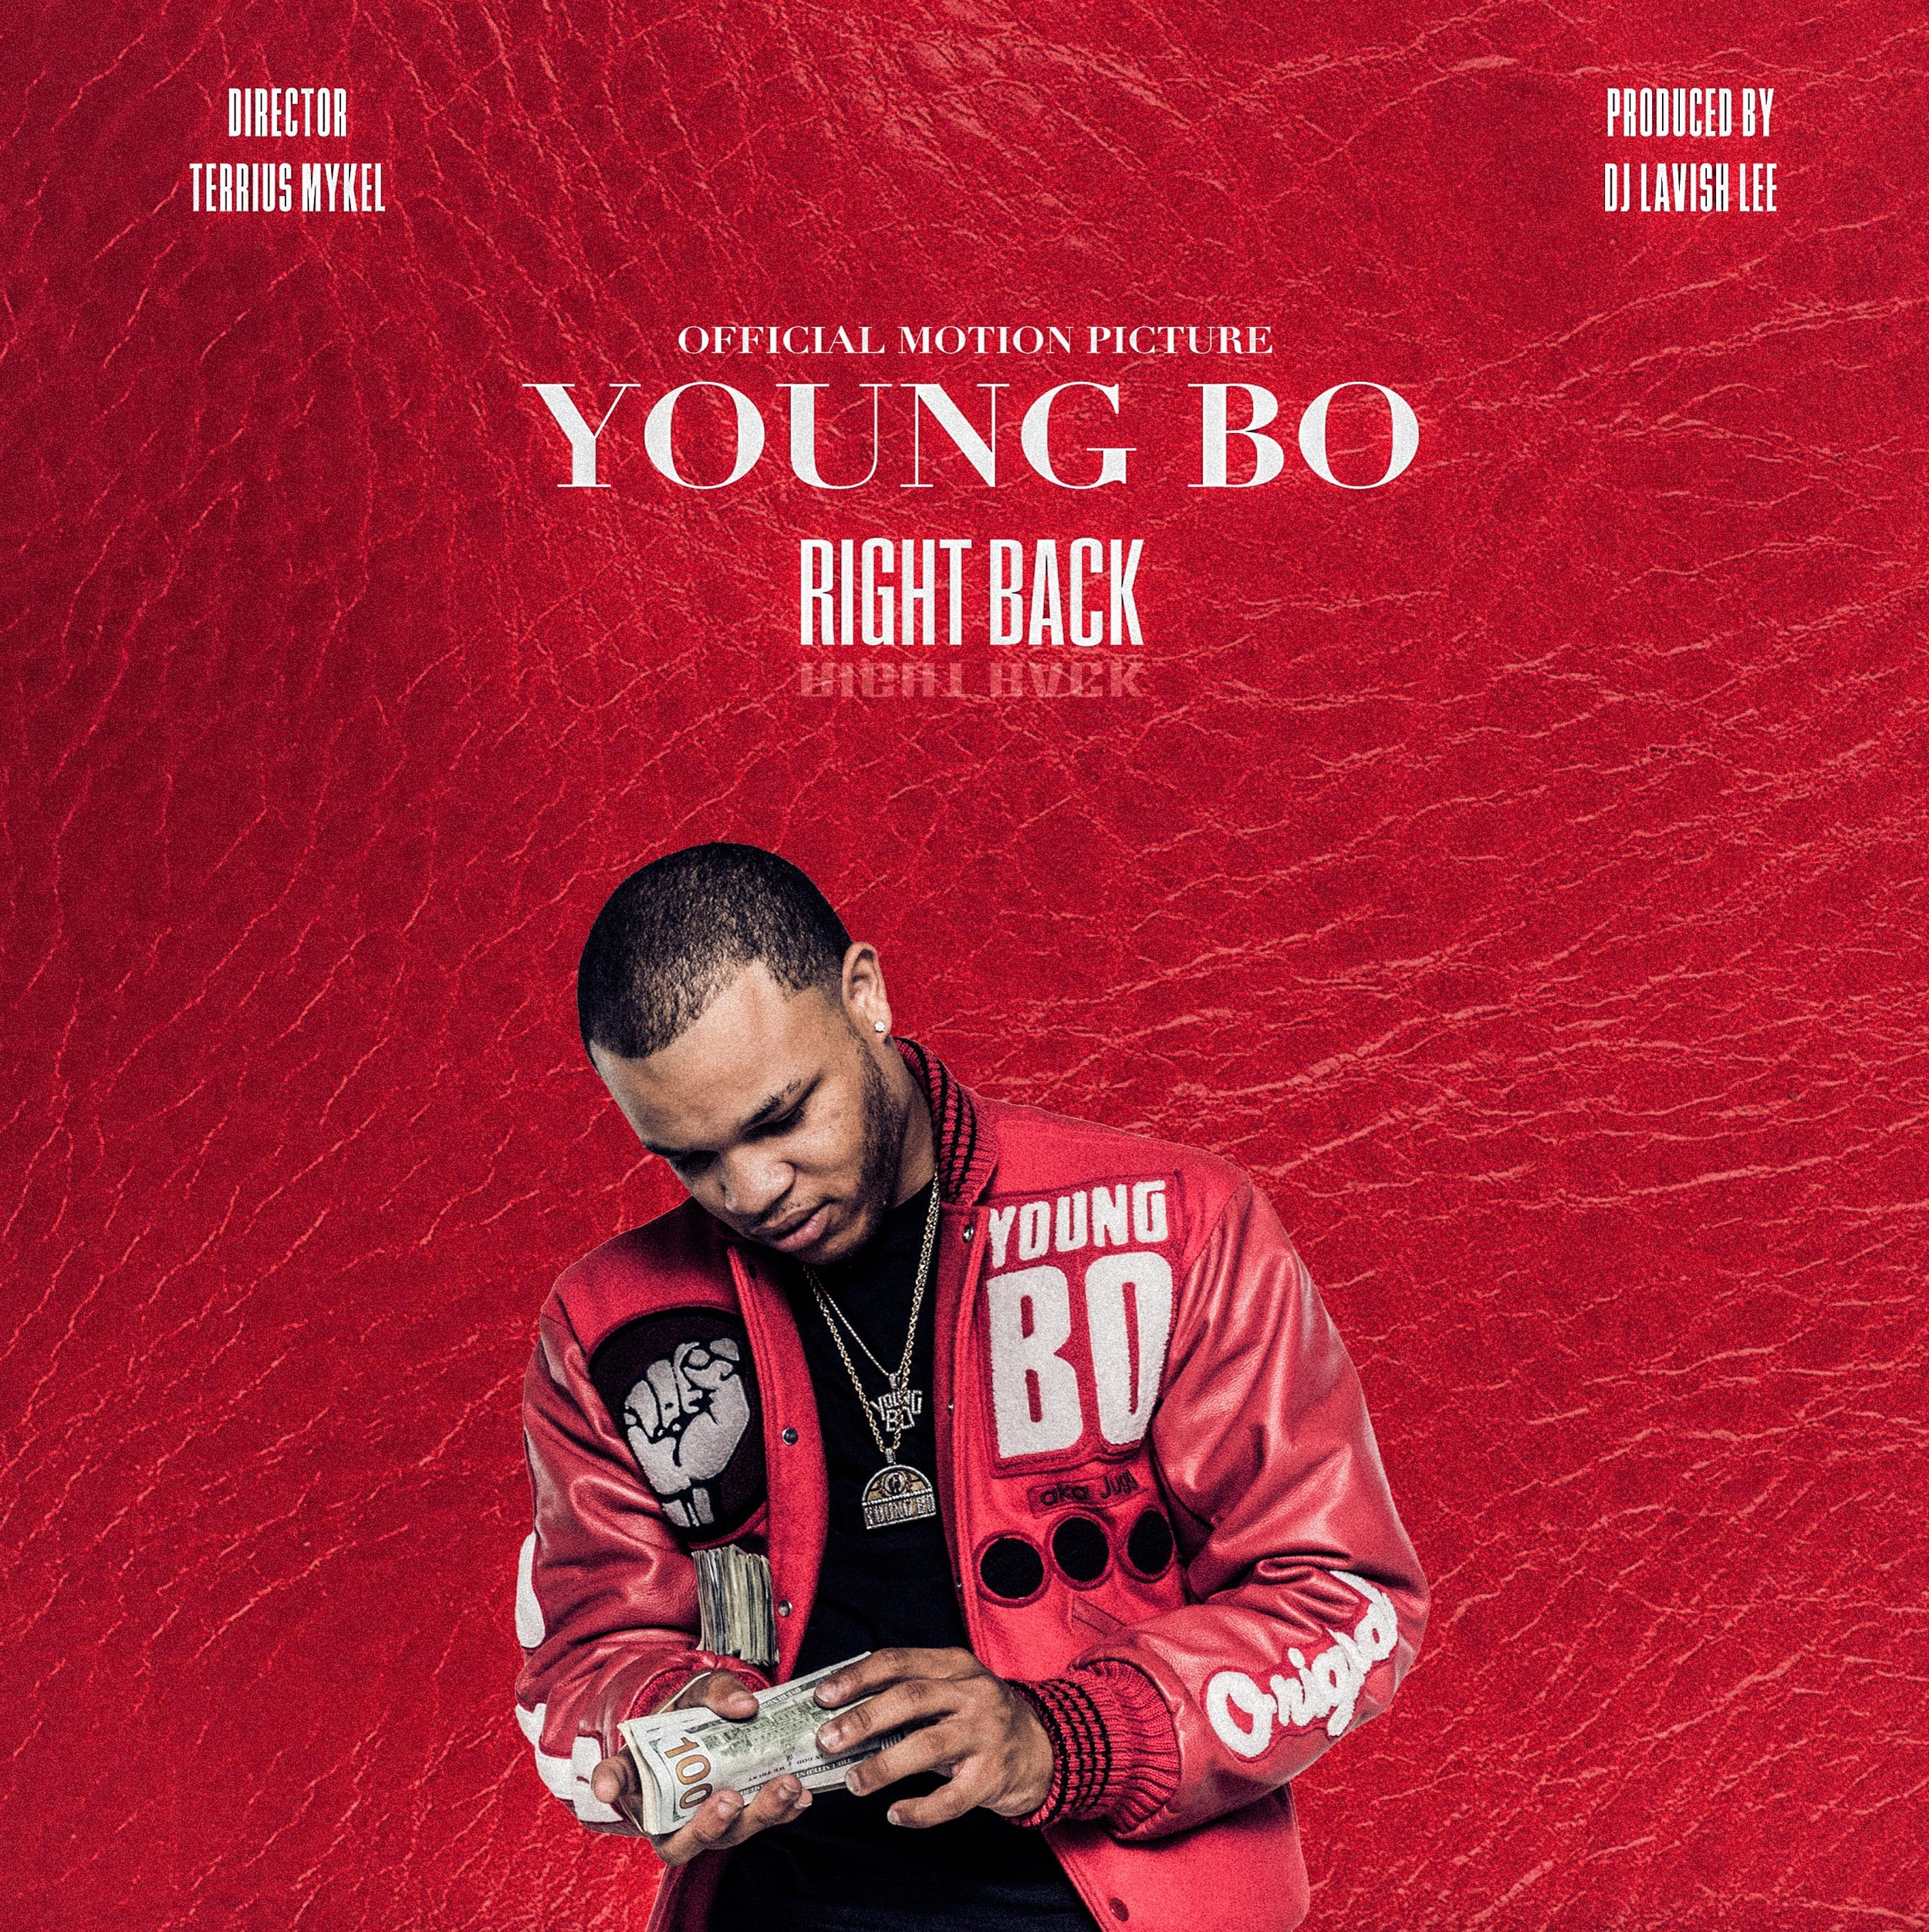 YOUNG BO RIGHT BACK COVER ART-2.jpg